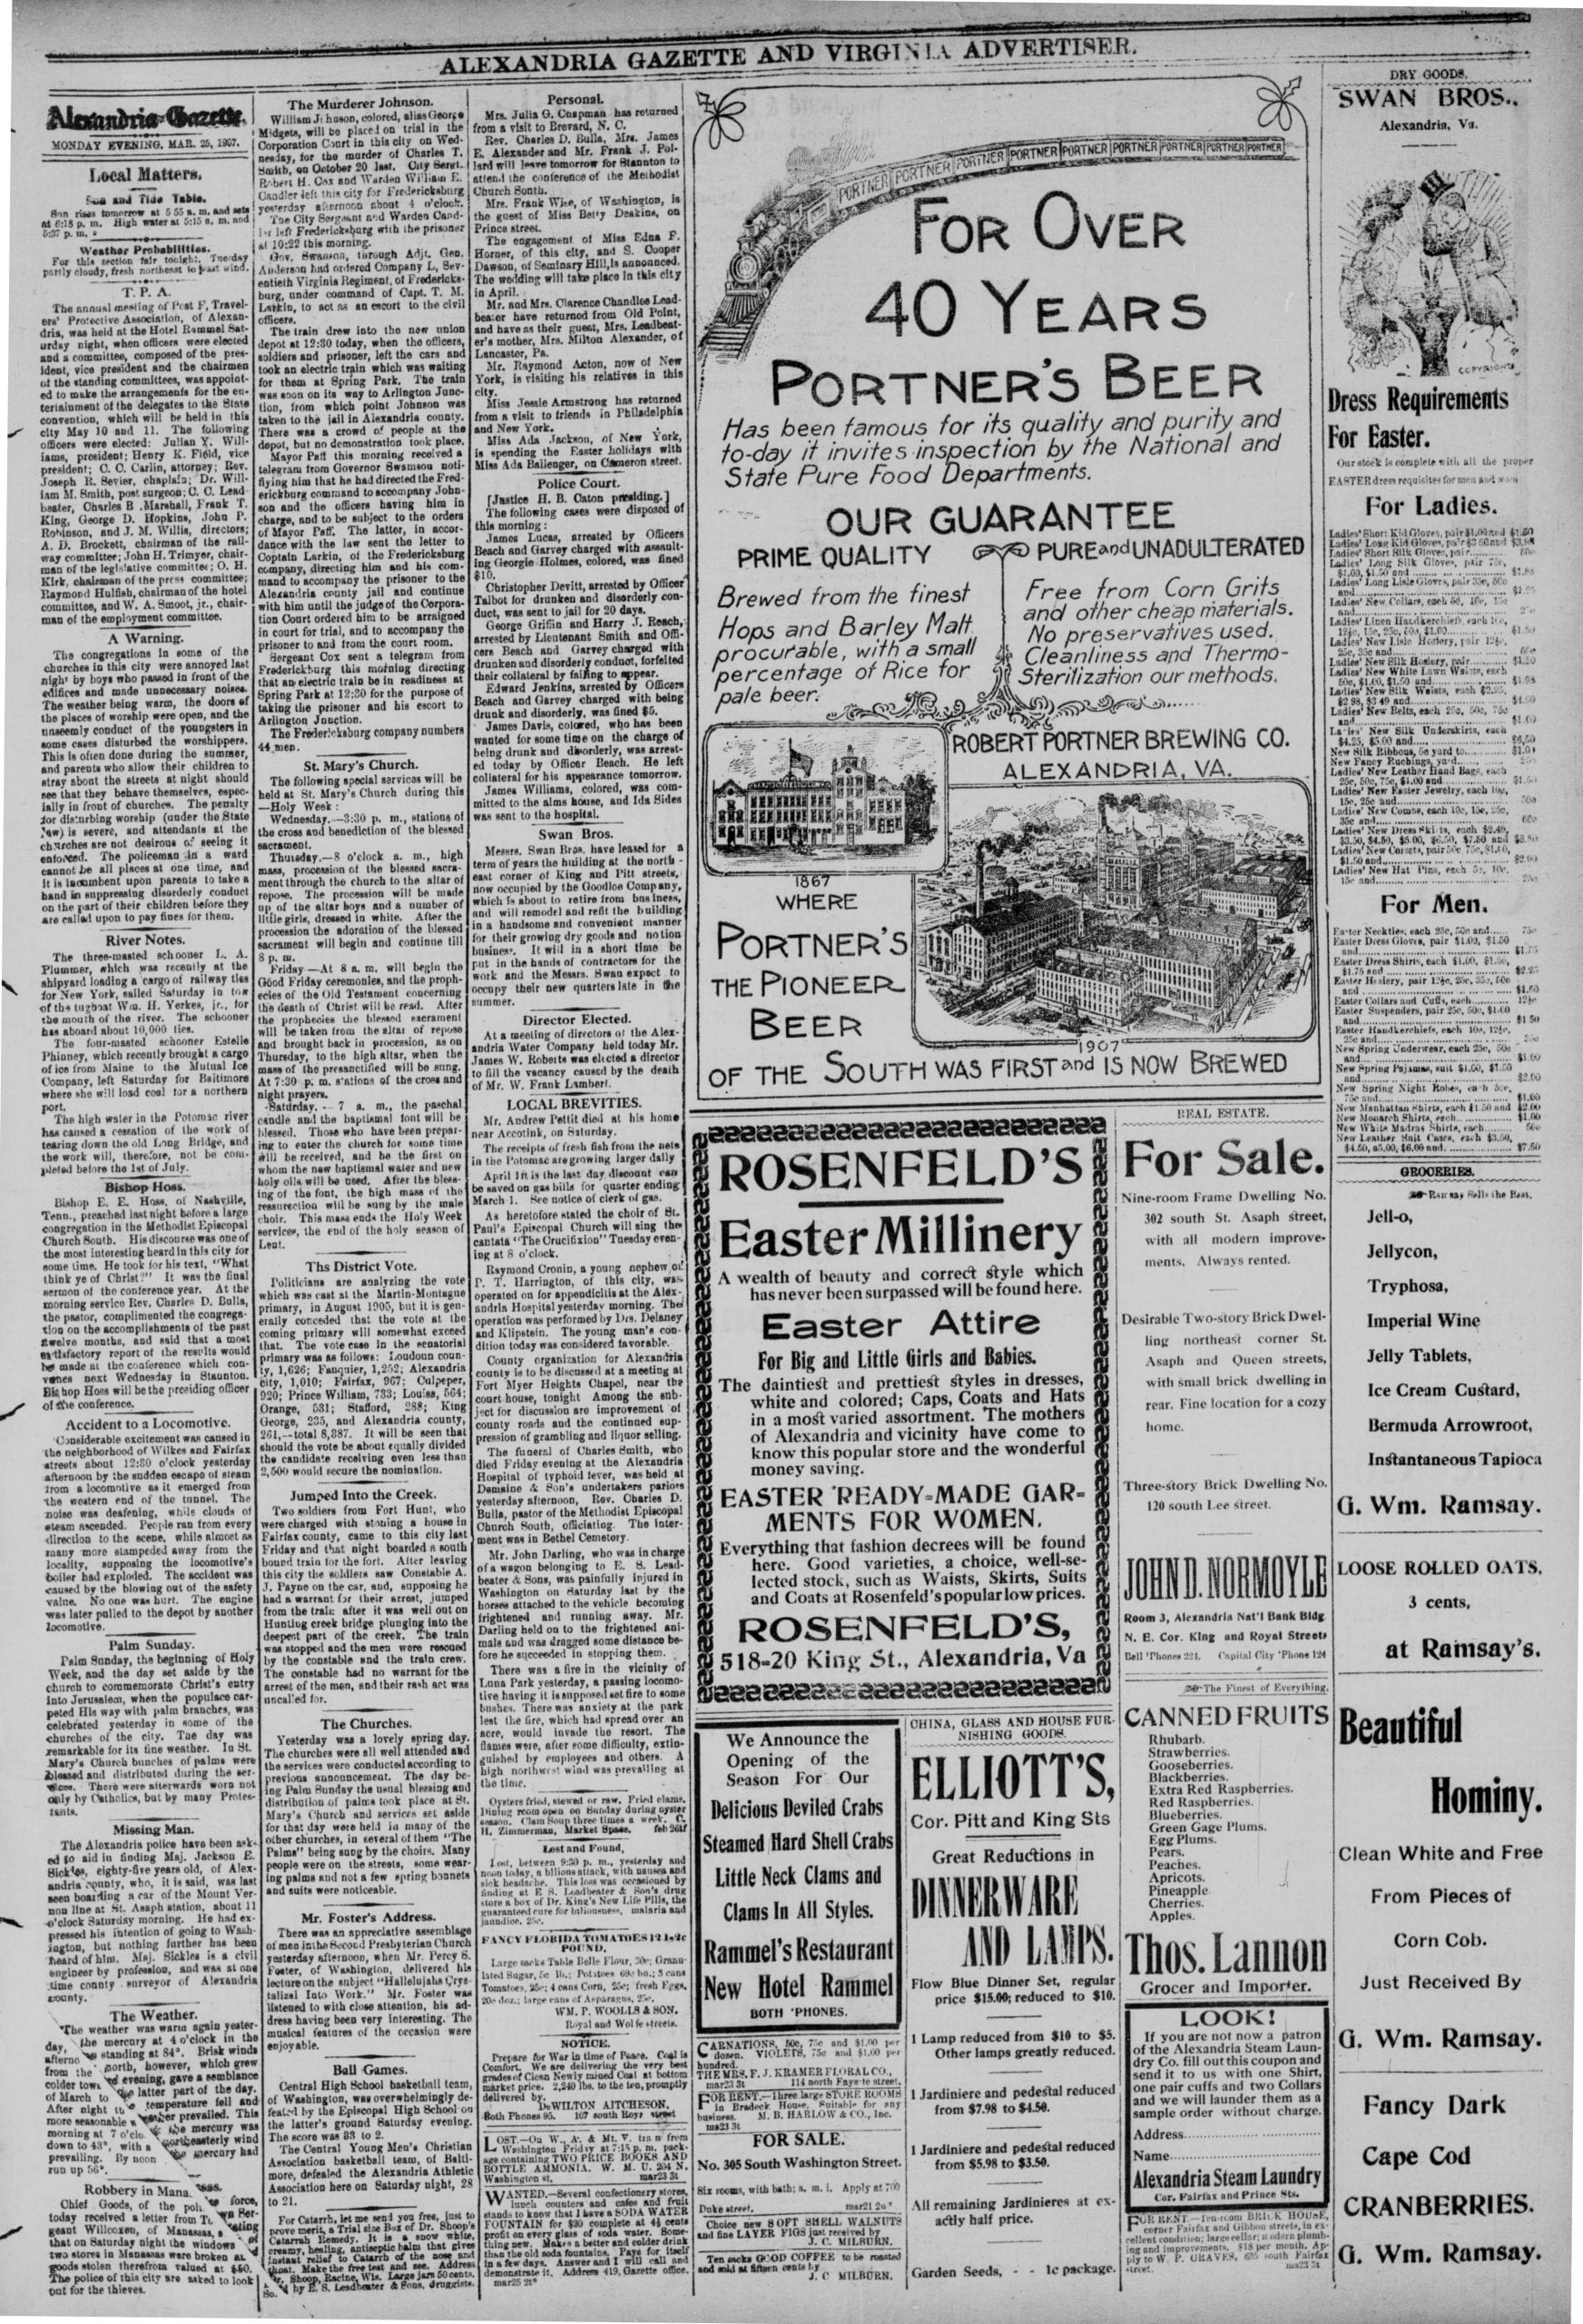 The Alexandria Gazette on March 25th, 1907